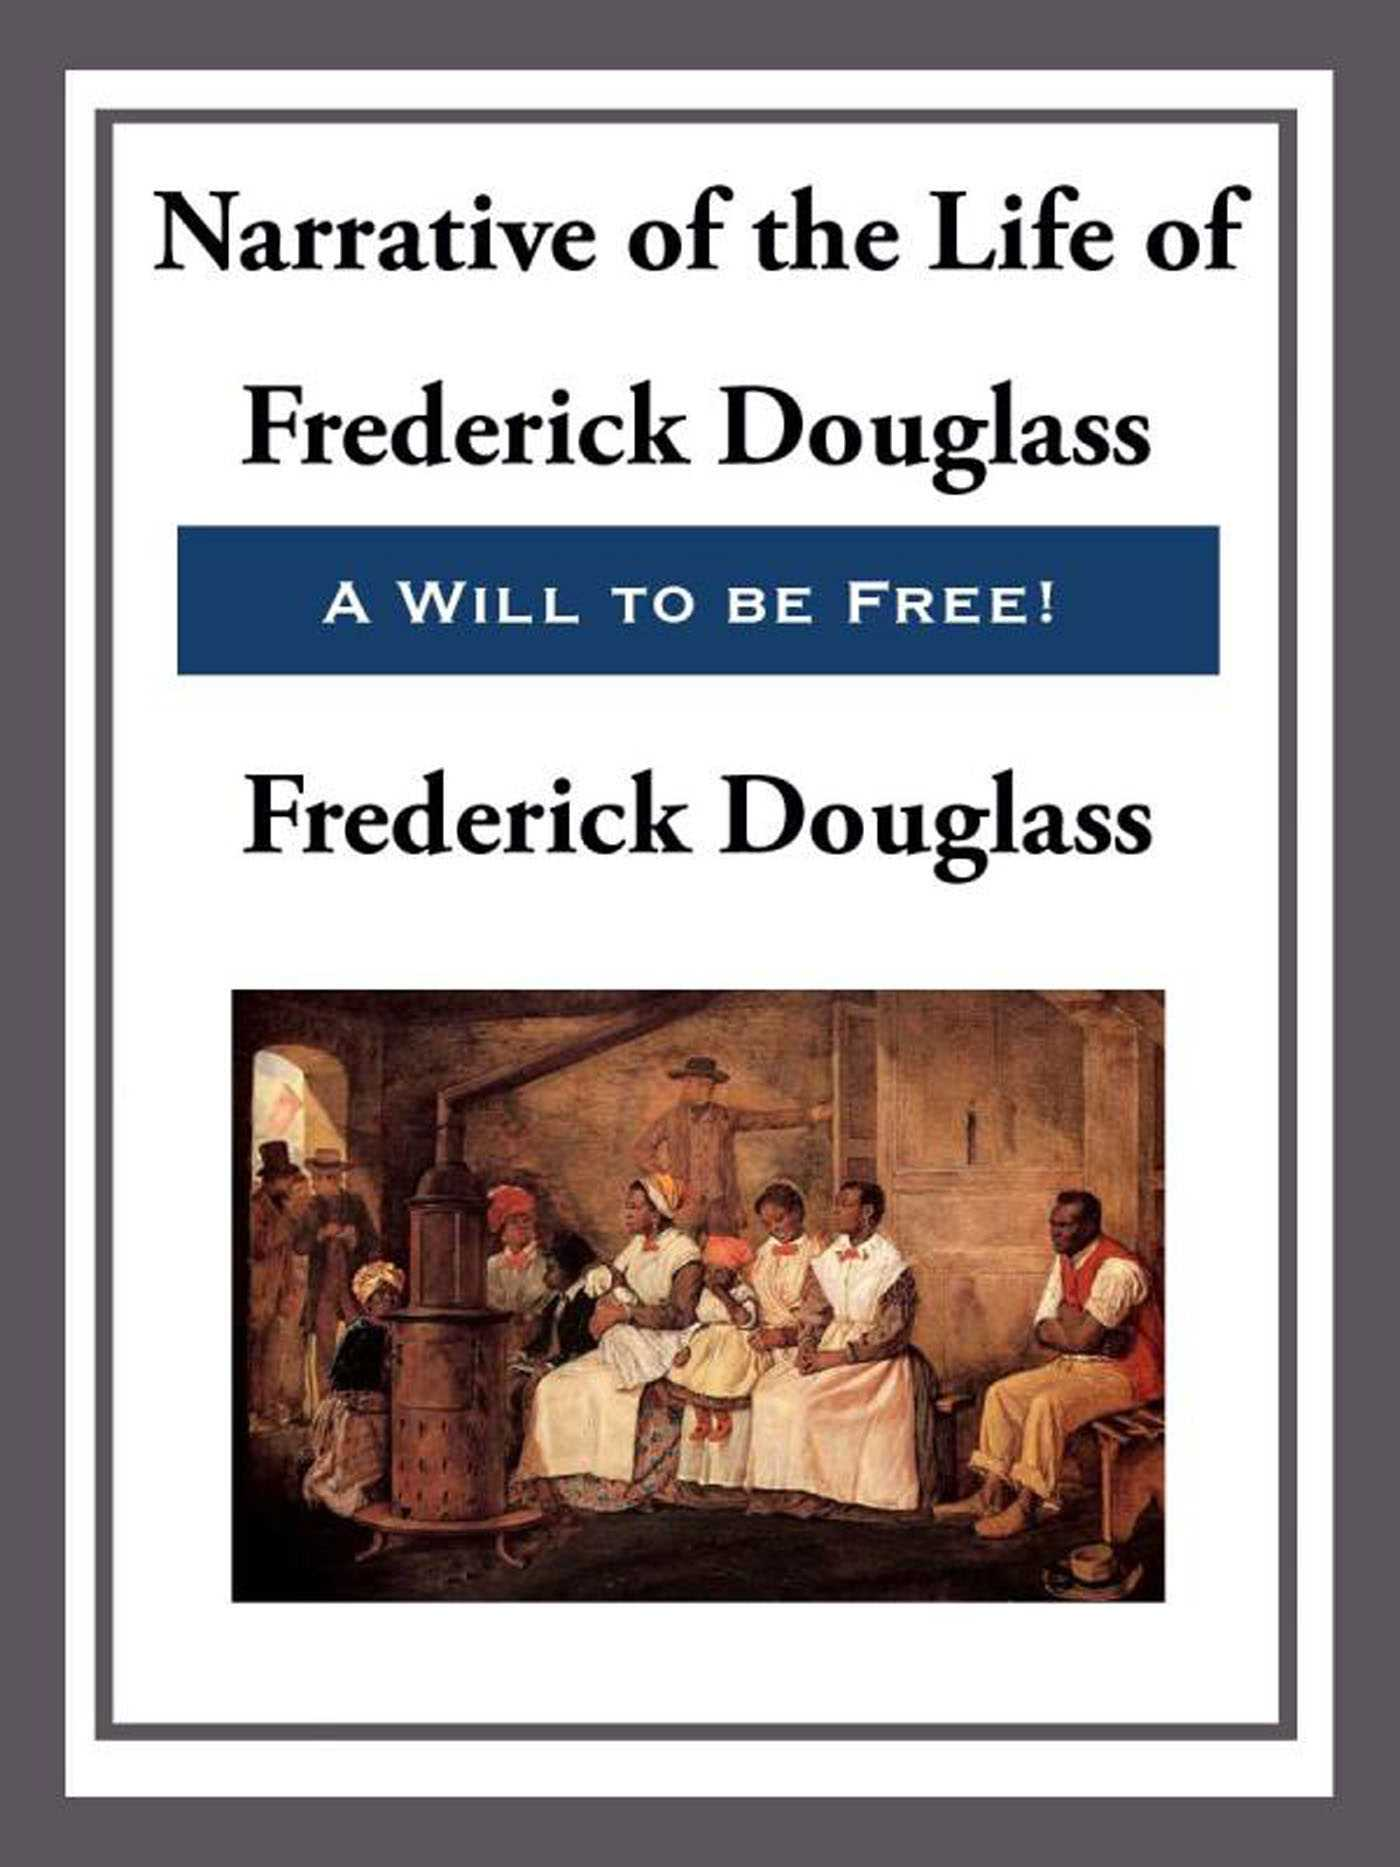 theme analysis in the narrative of the life of frederick douglass by frederick douglass